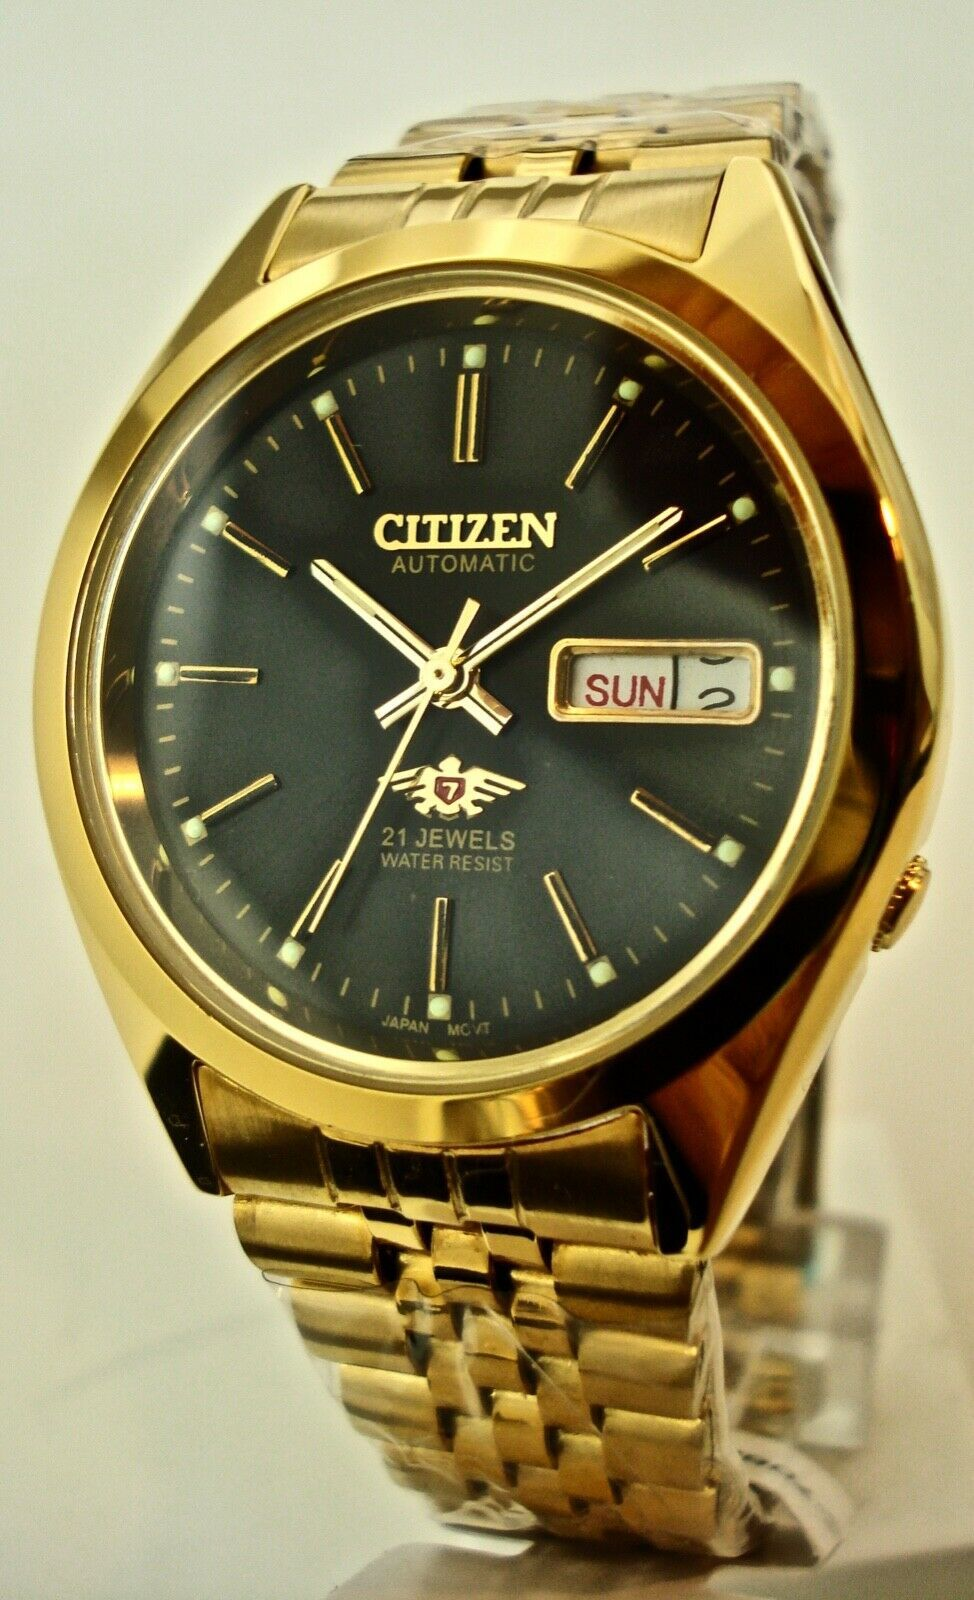 Primary image for NEW CITIZEN Men's Automatic 21 Jewels Gold & Black Dial Watch